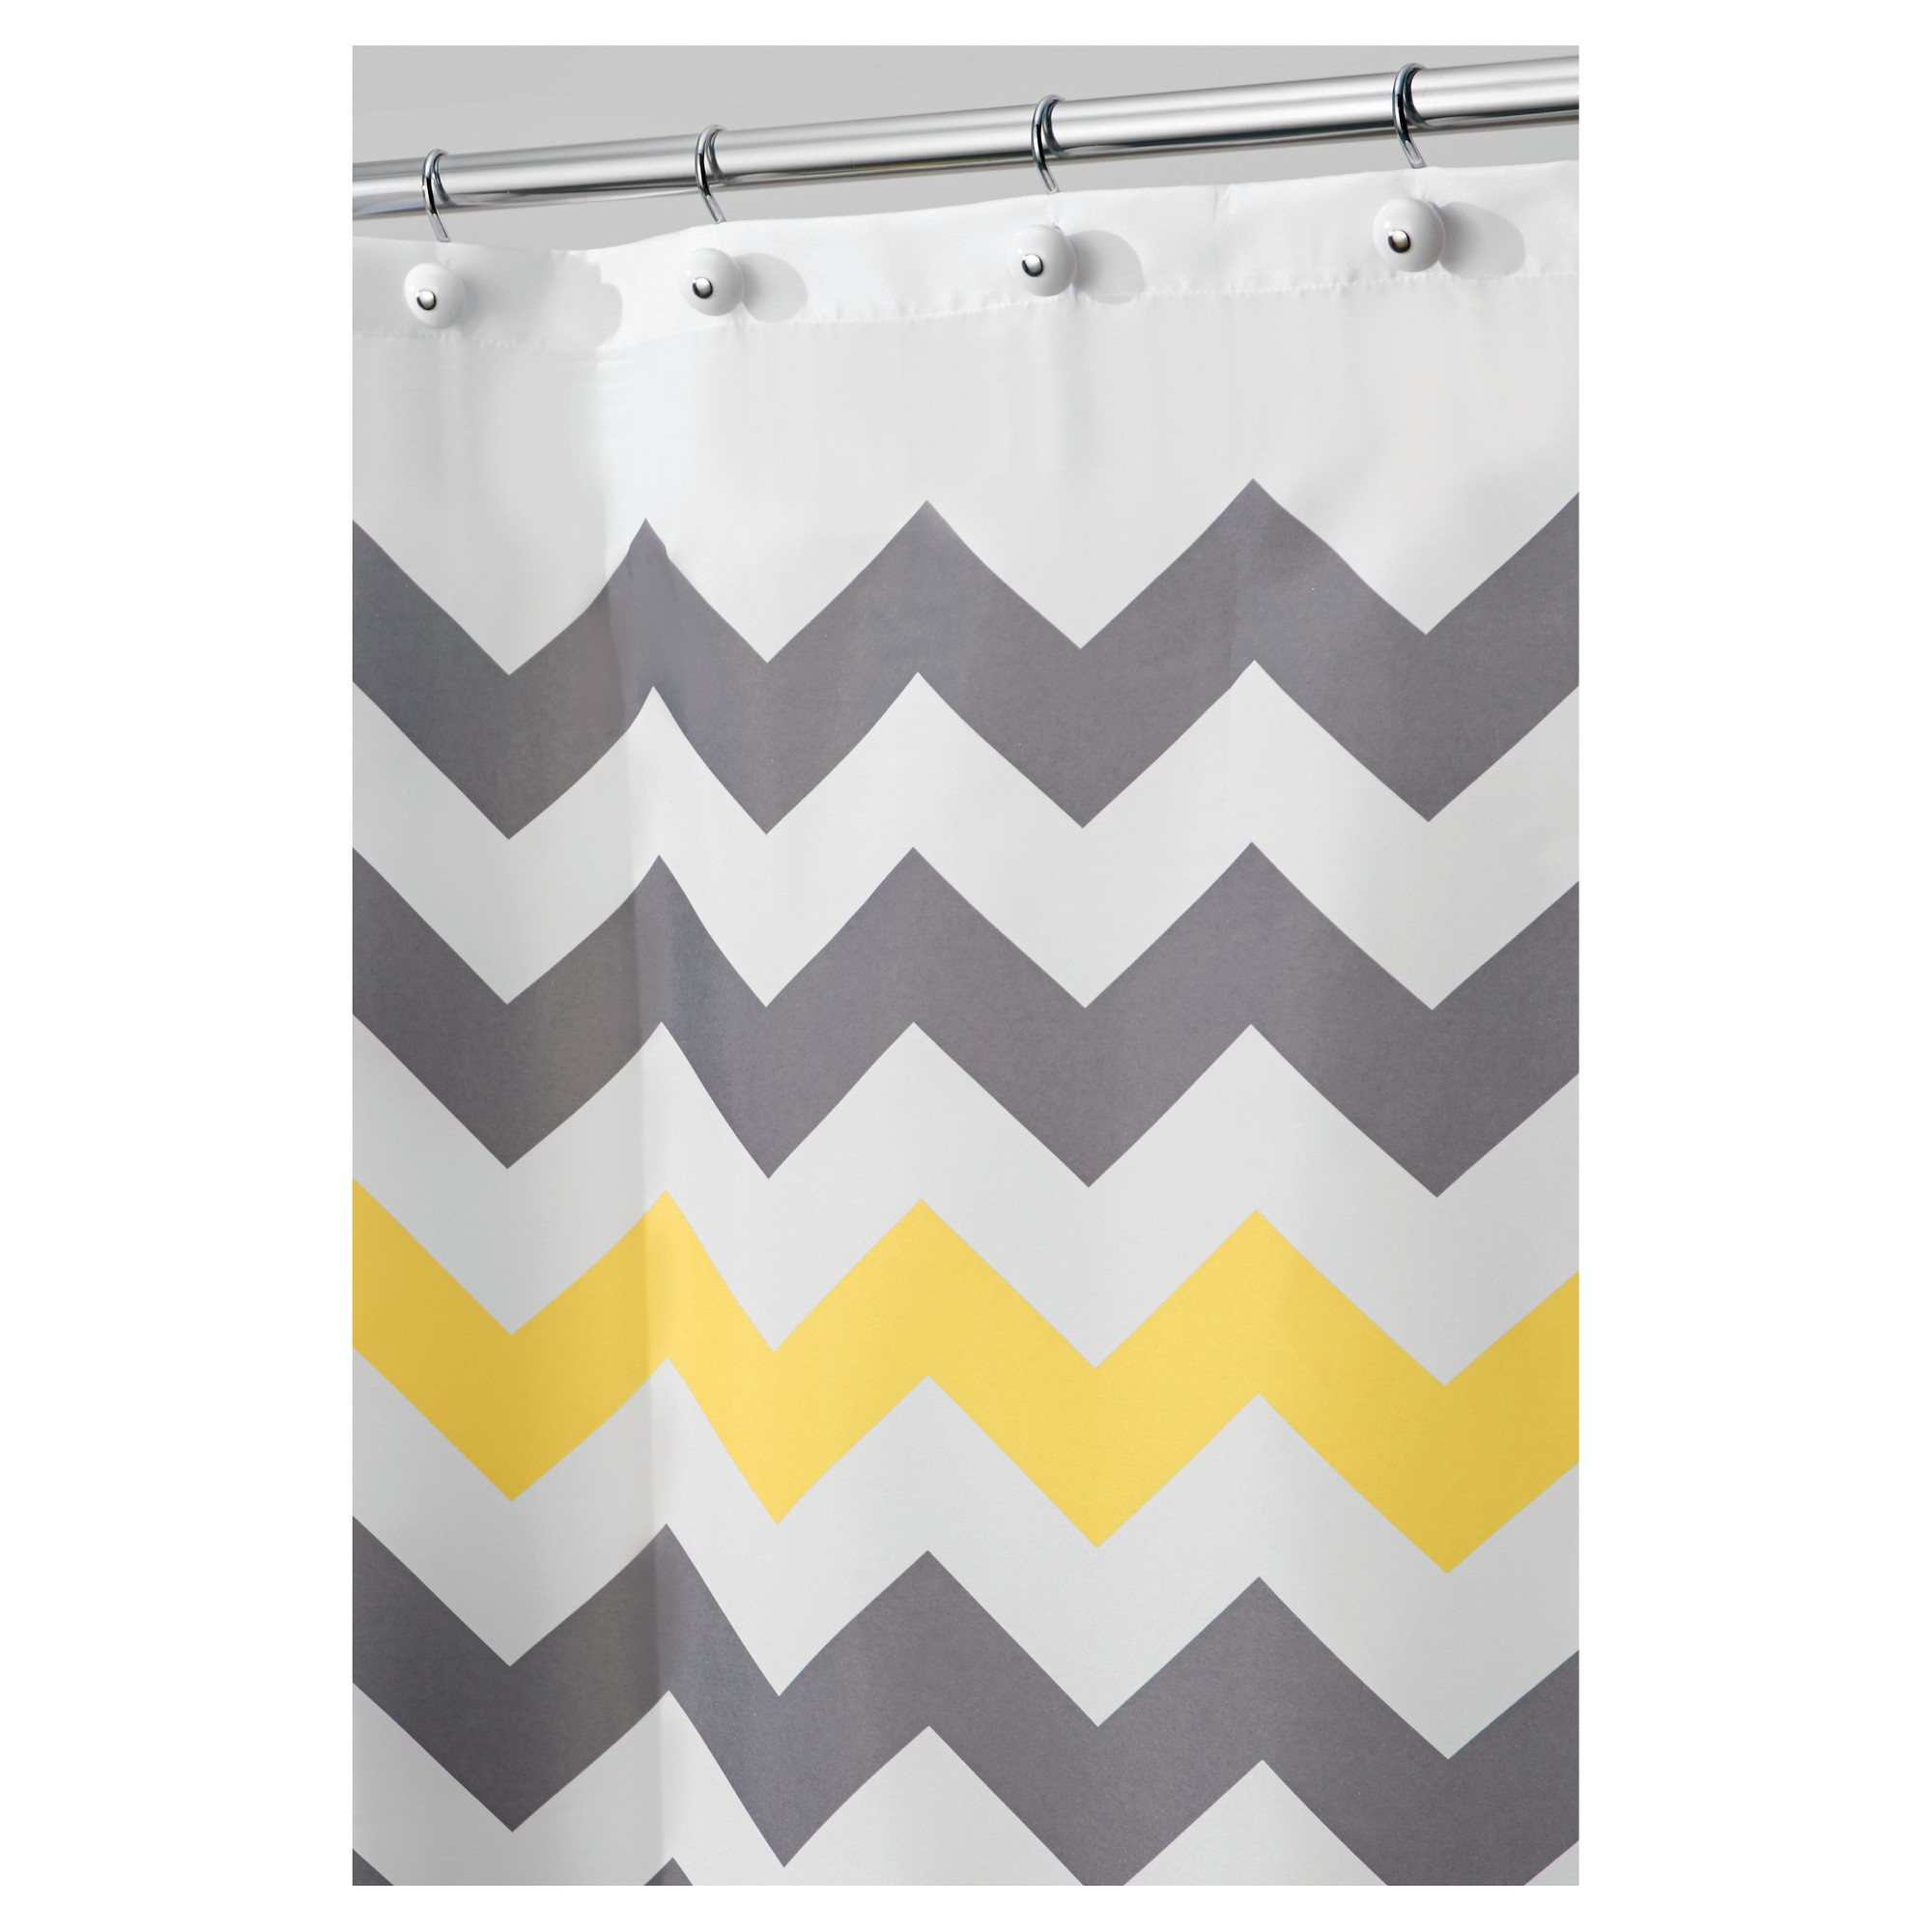 Shower Curtain Polyester Chevron X Wide 108 X72 Gray Yellow Interdesign Shower Curtain Polyester Grey Curtains